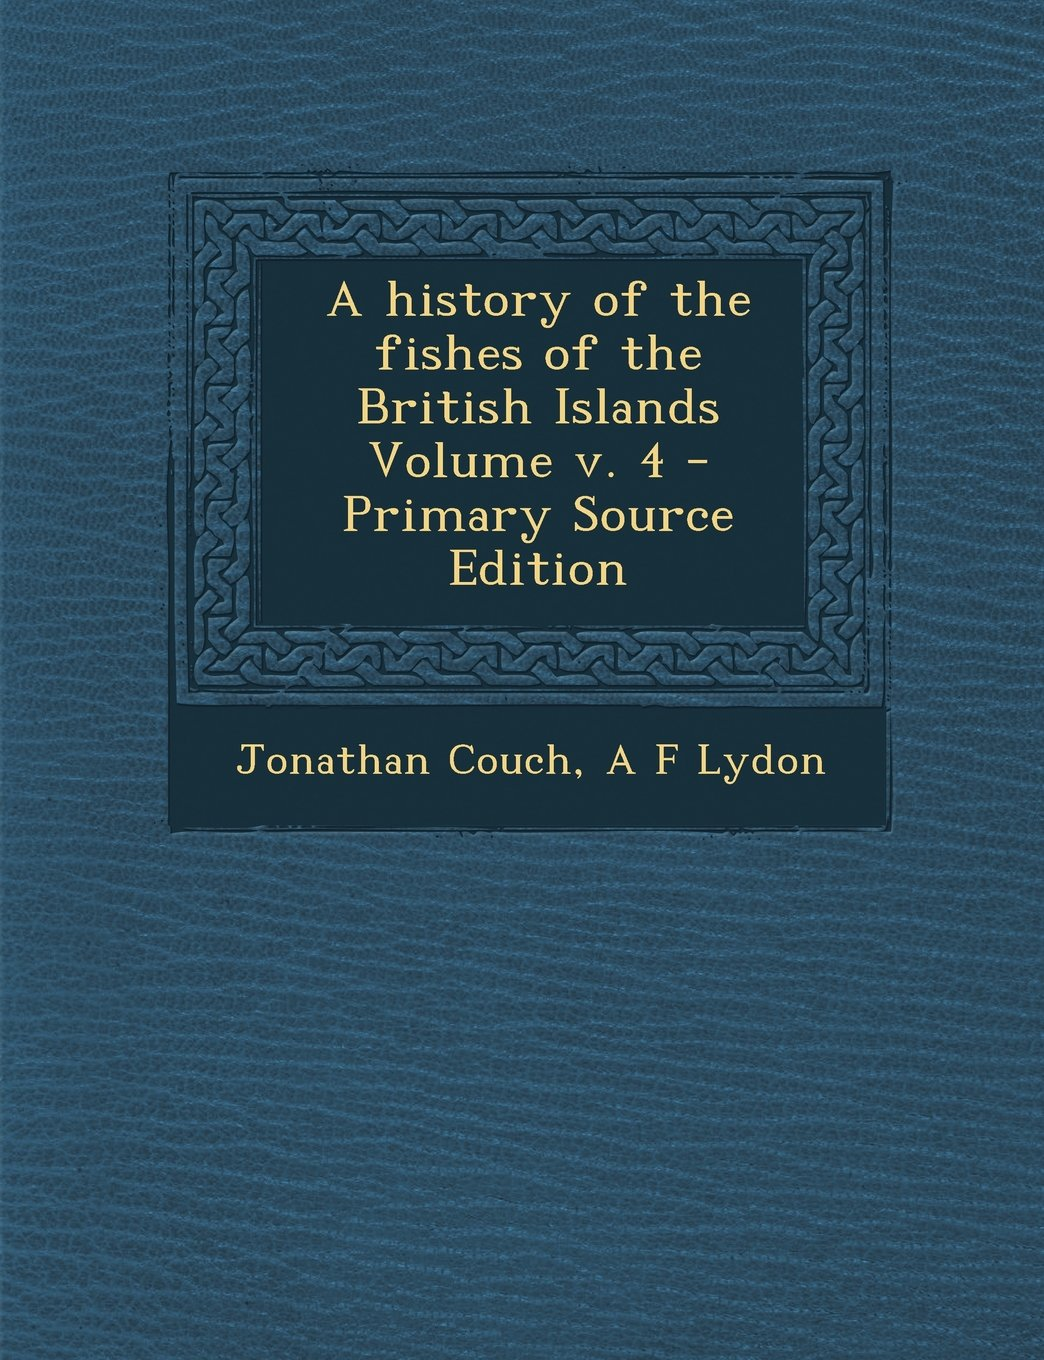 Download A History of the Fishes of the British Islands Volume V. 4 - Primary Source Edition pdf